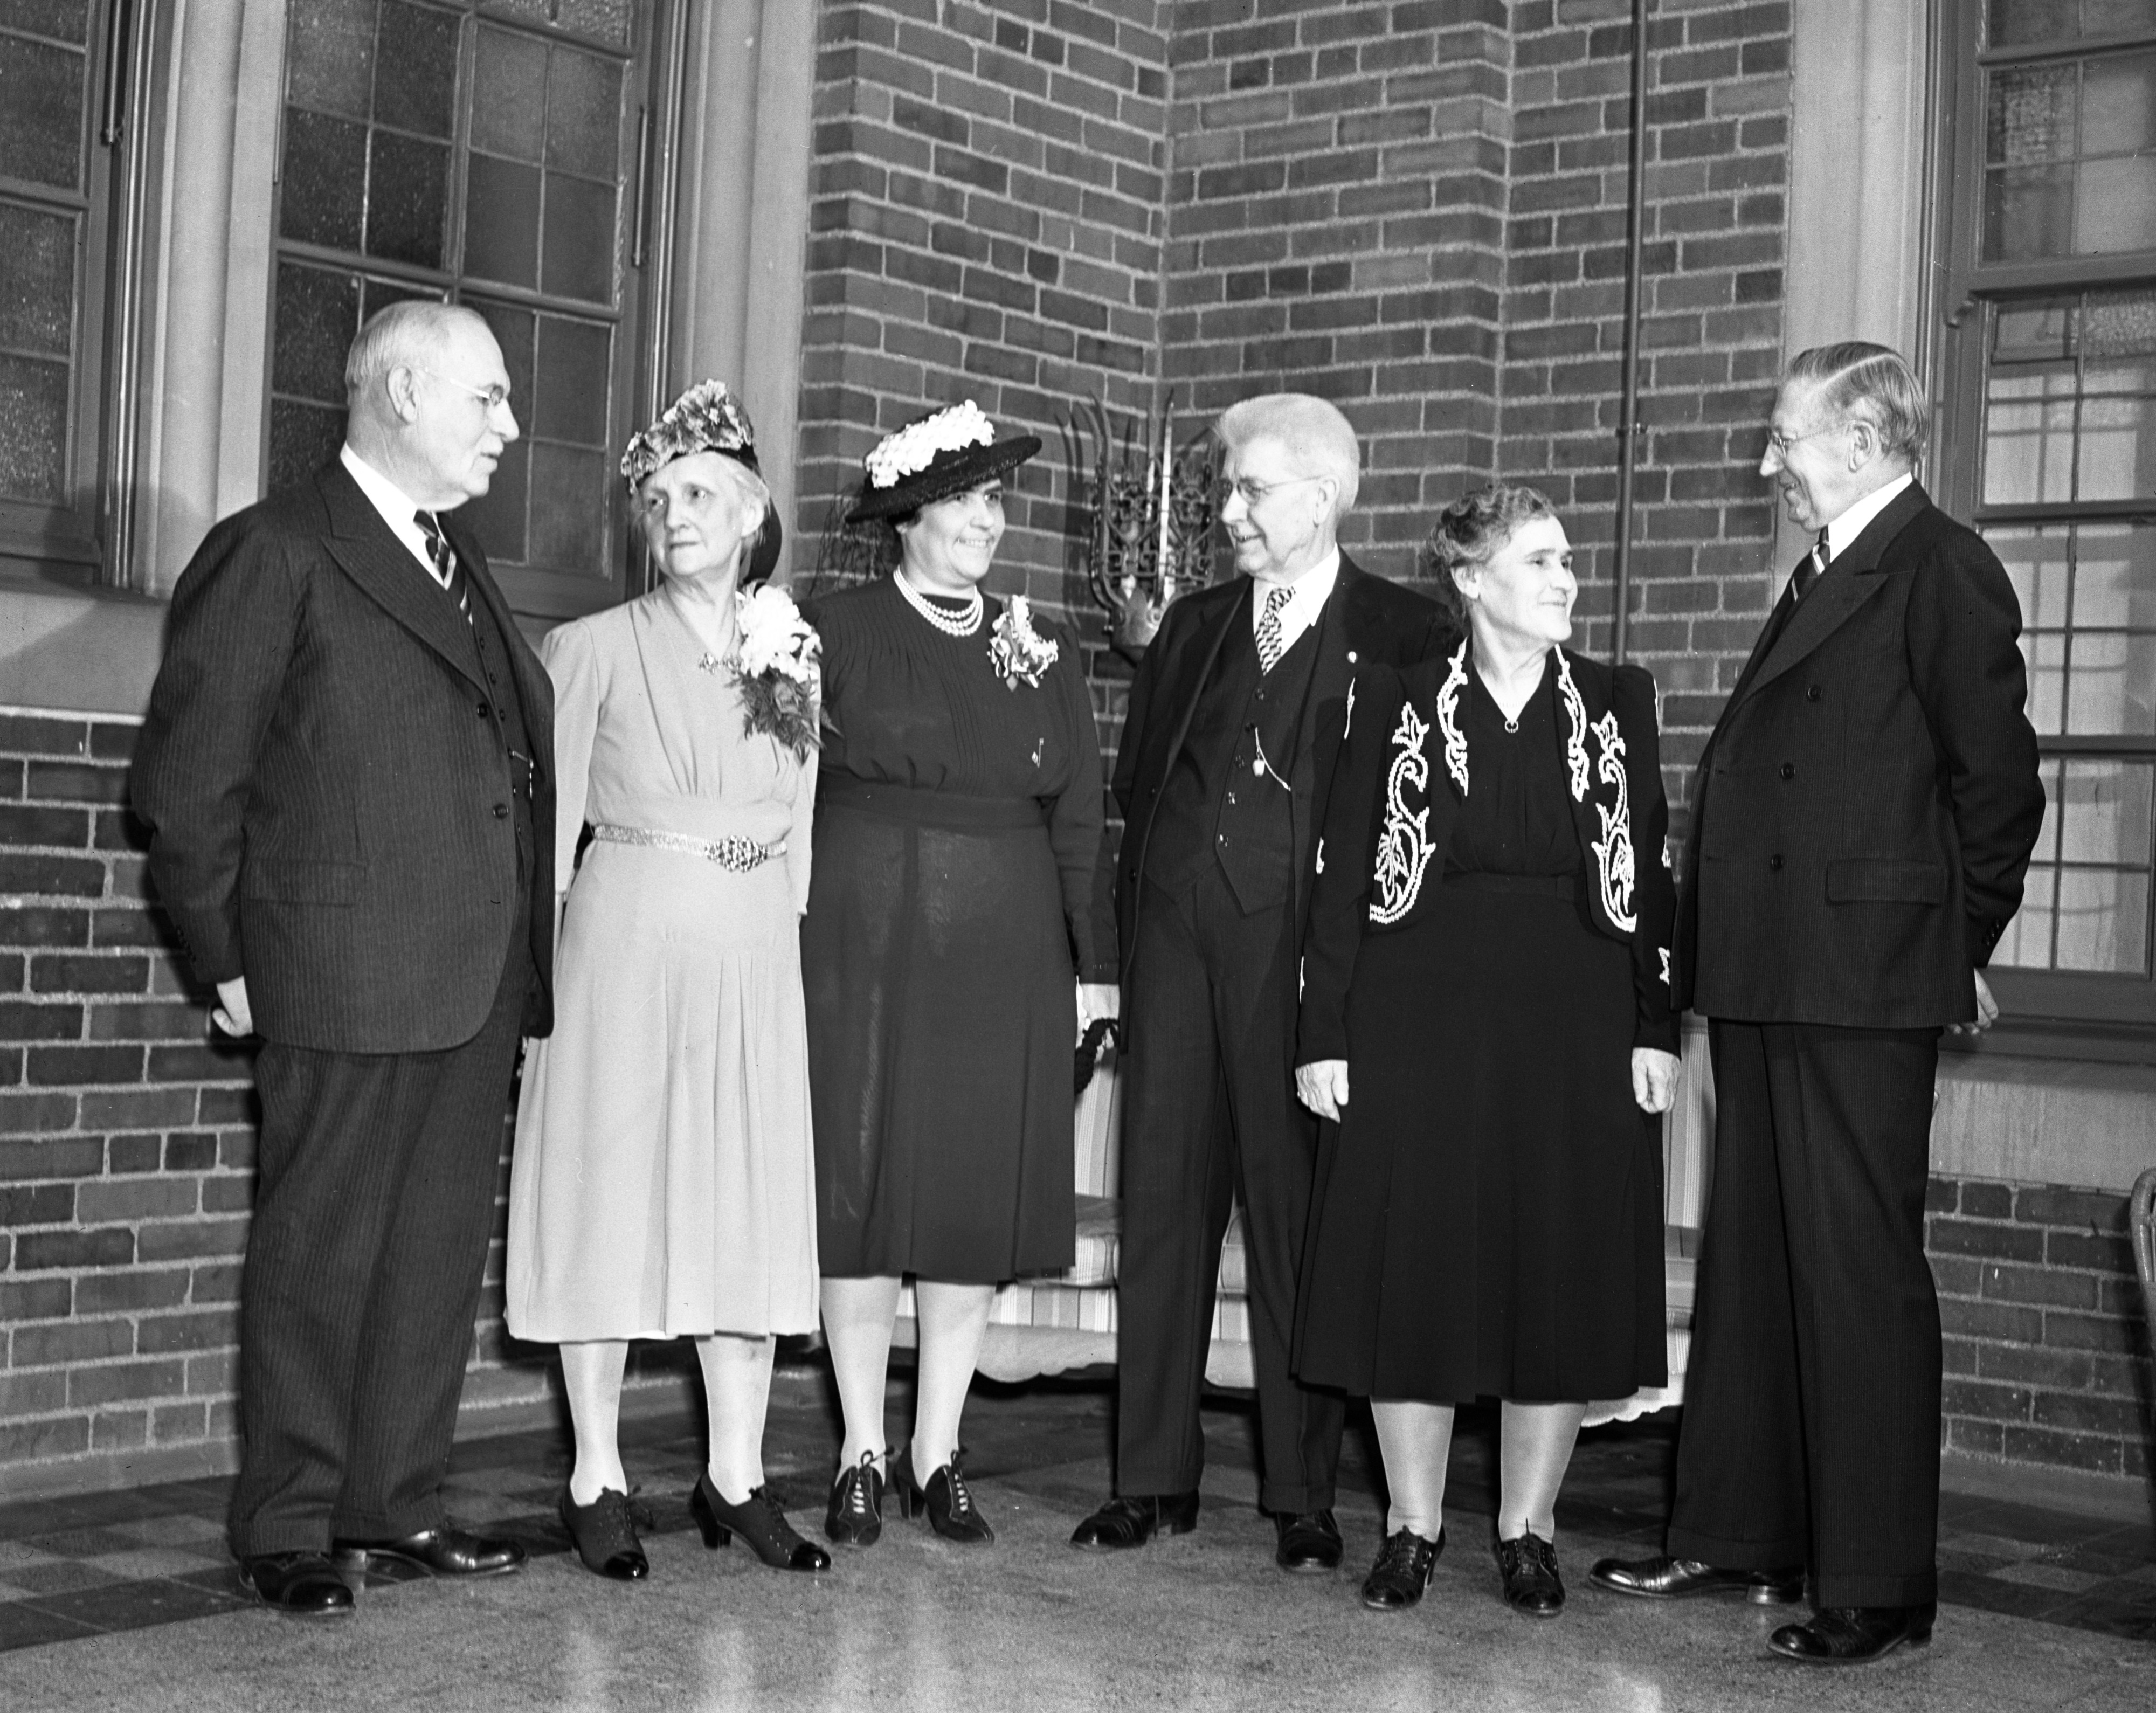 County Citizenship Awards, 1940 image